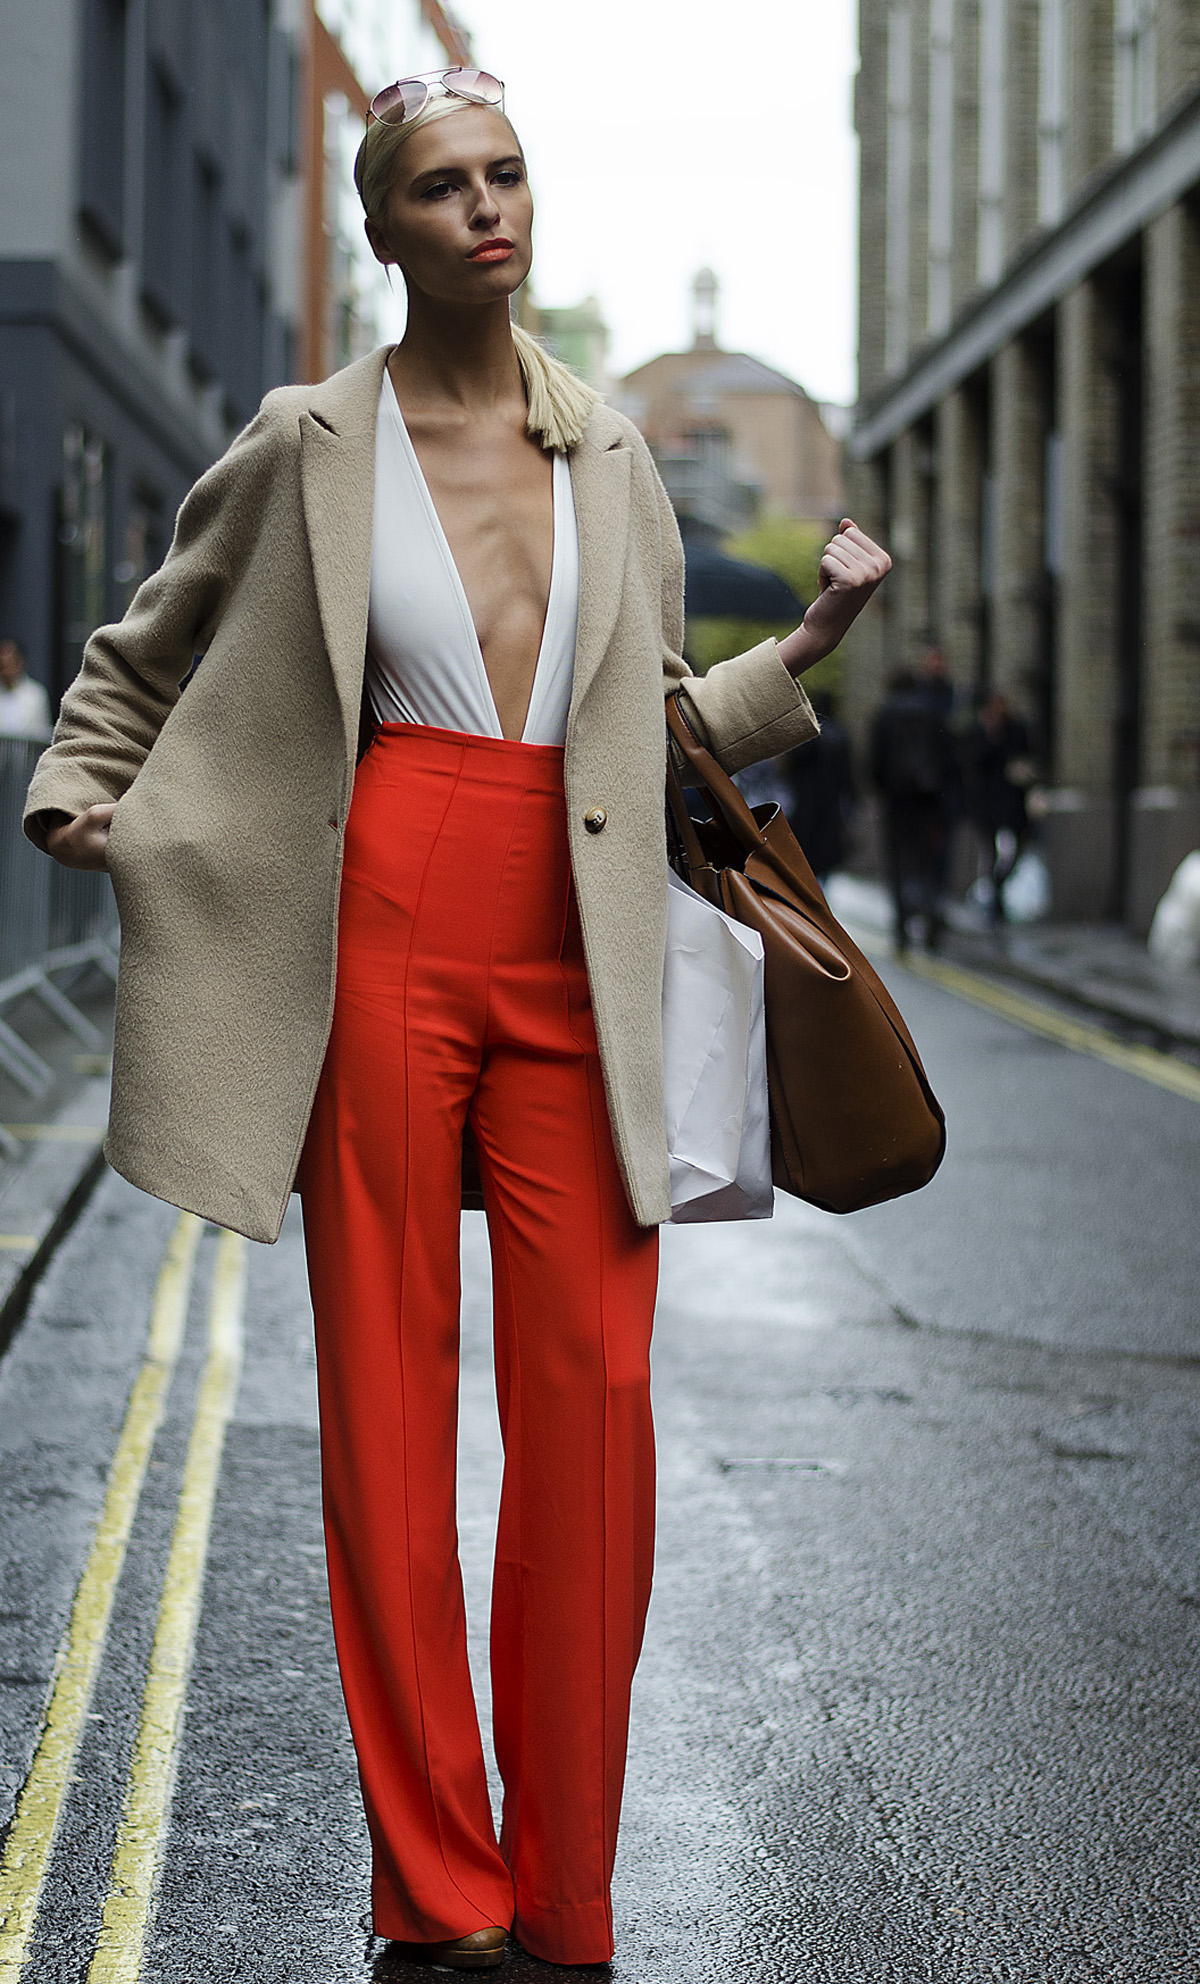 London-Fashion-Week-2015-LFW-SS16-Zoe-Basia-Brown-Street-Style-Brewer-Street-Car-Park-Soho